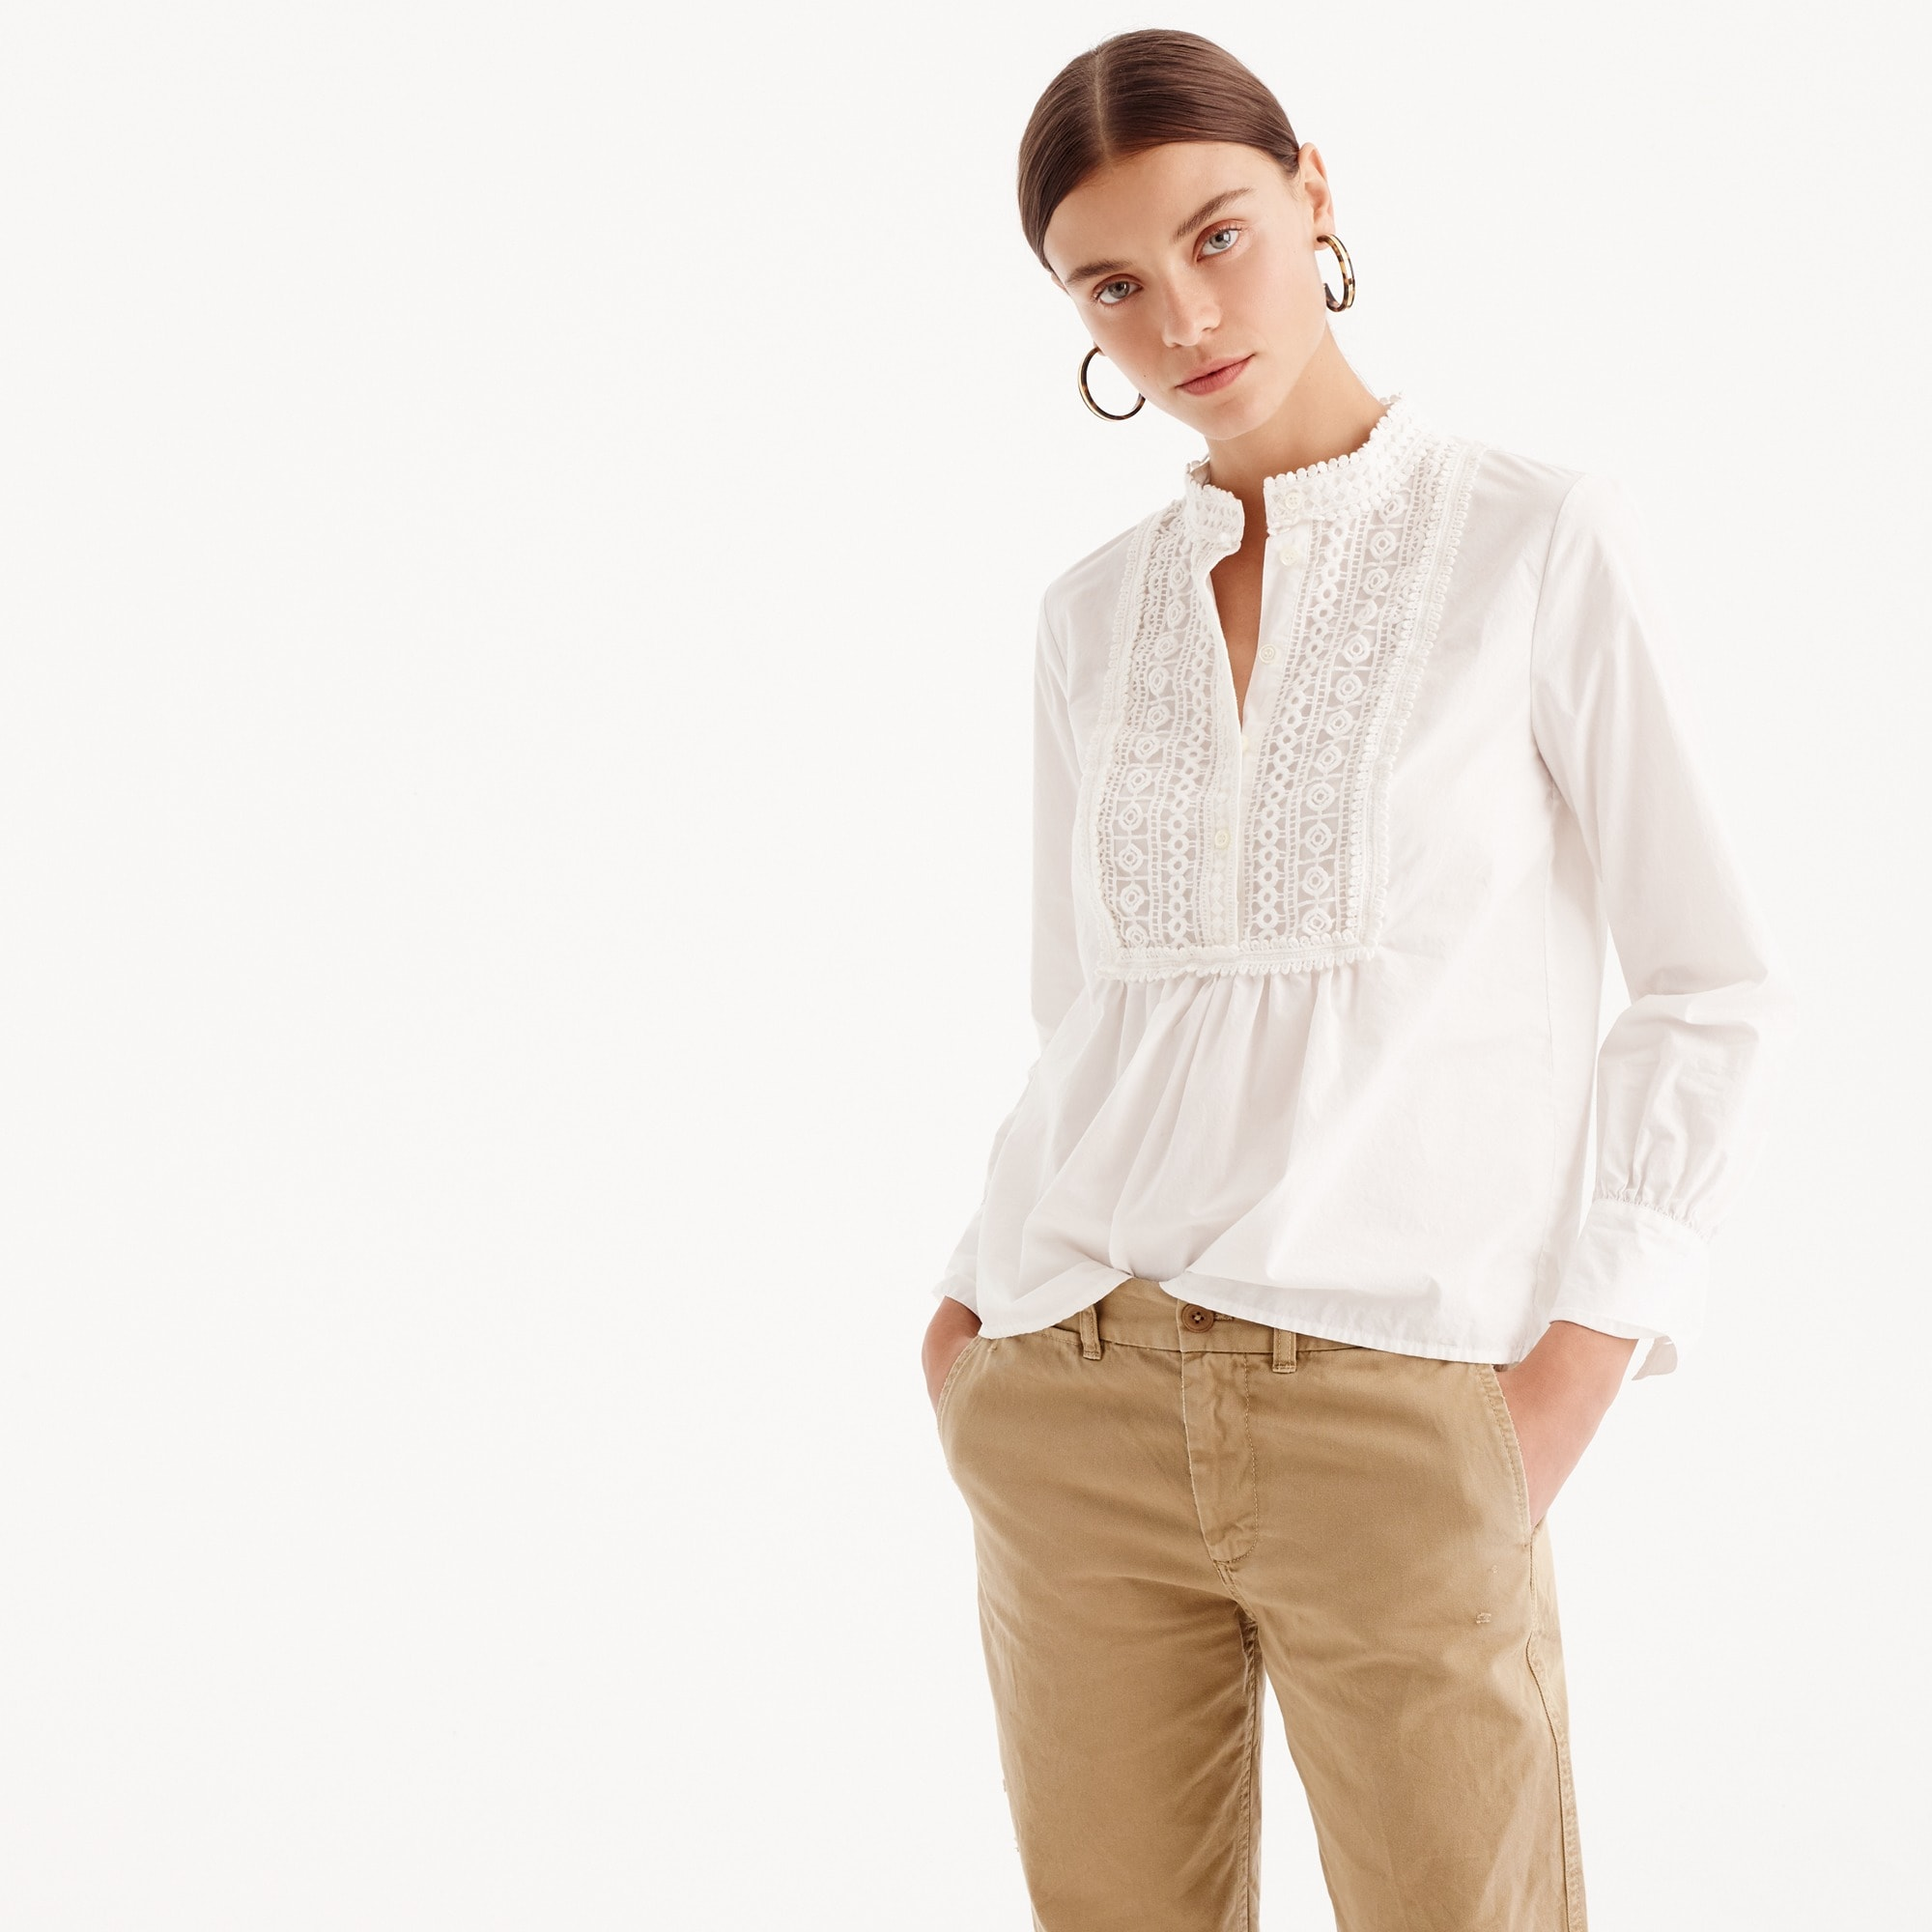 petite popover shirt with lace bib : women button-ups